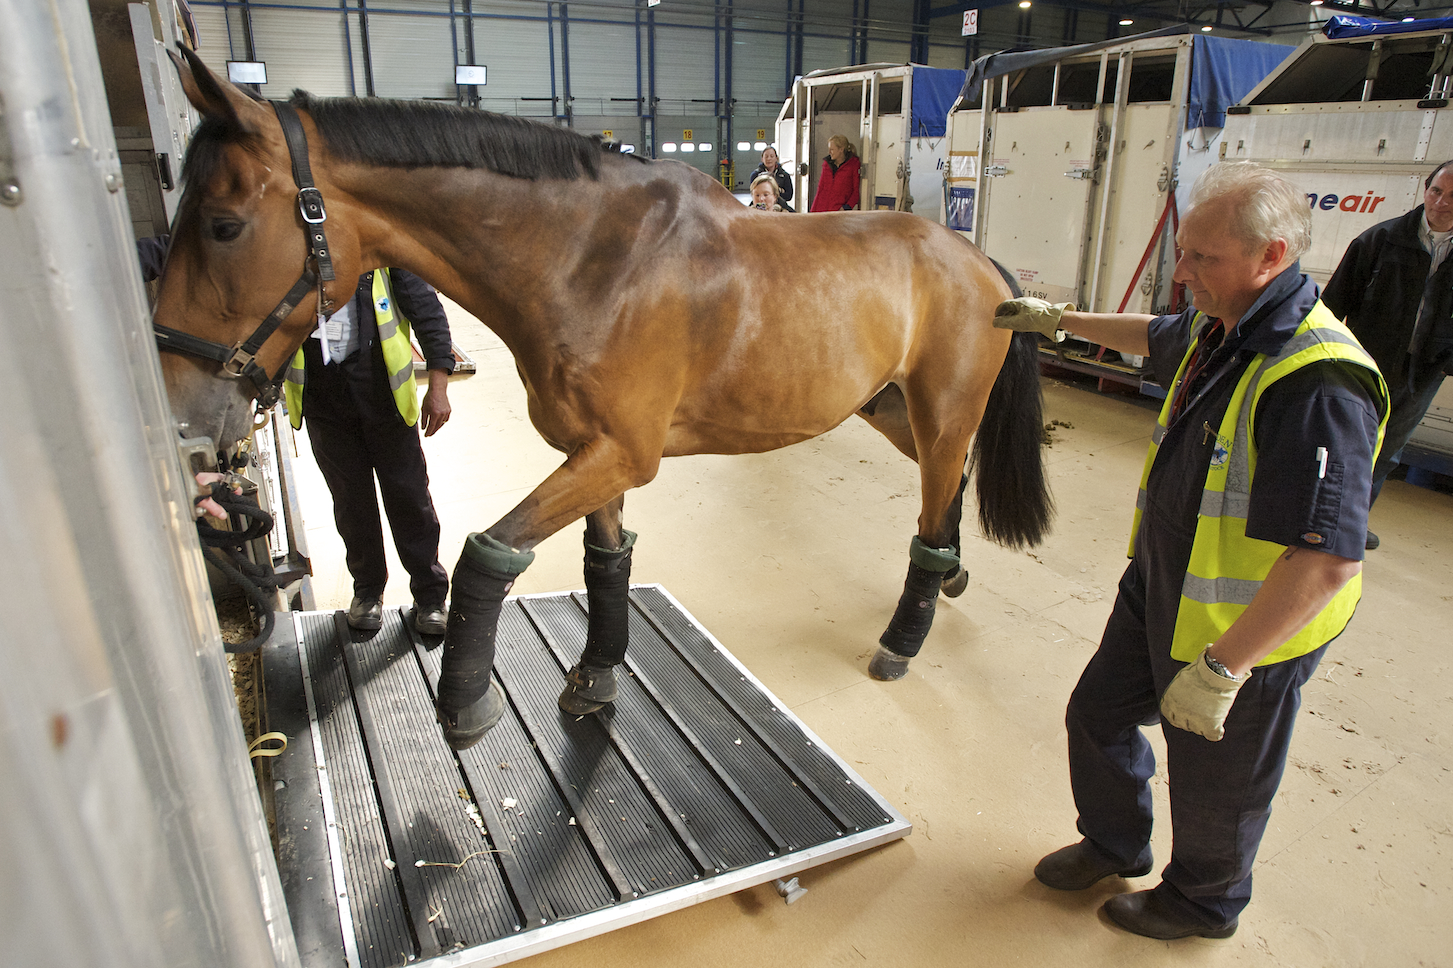 International travel of horses means the virus can spread readily from one country to another.